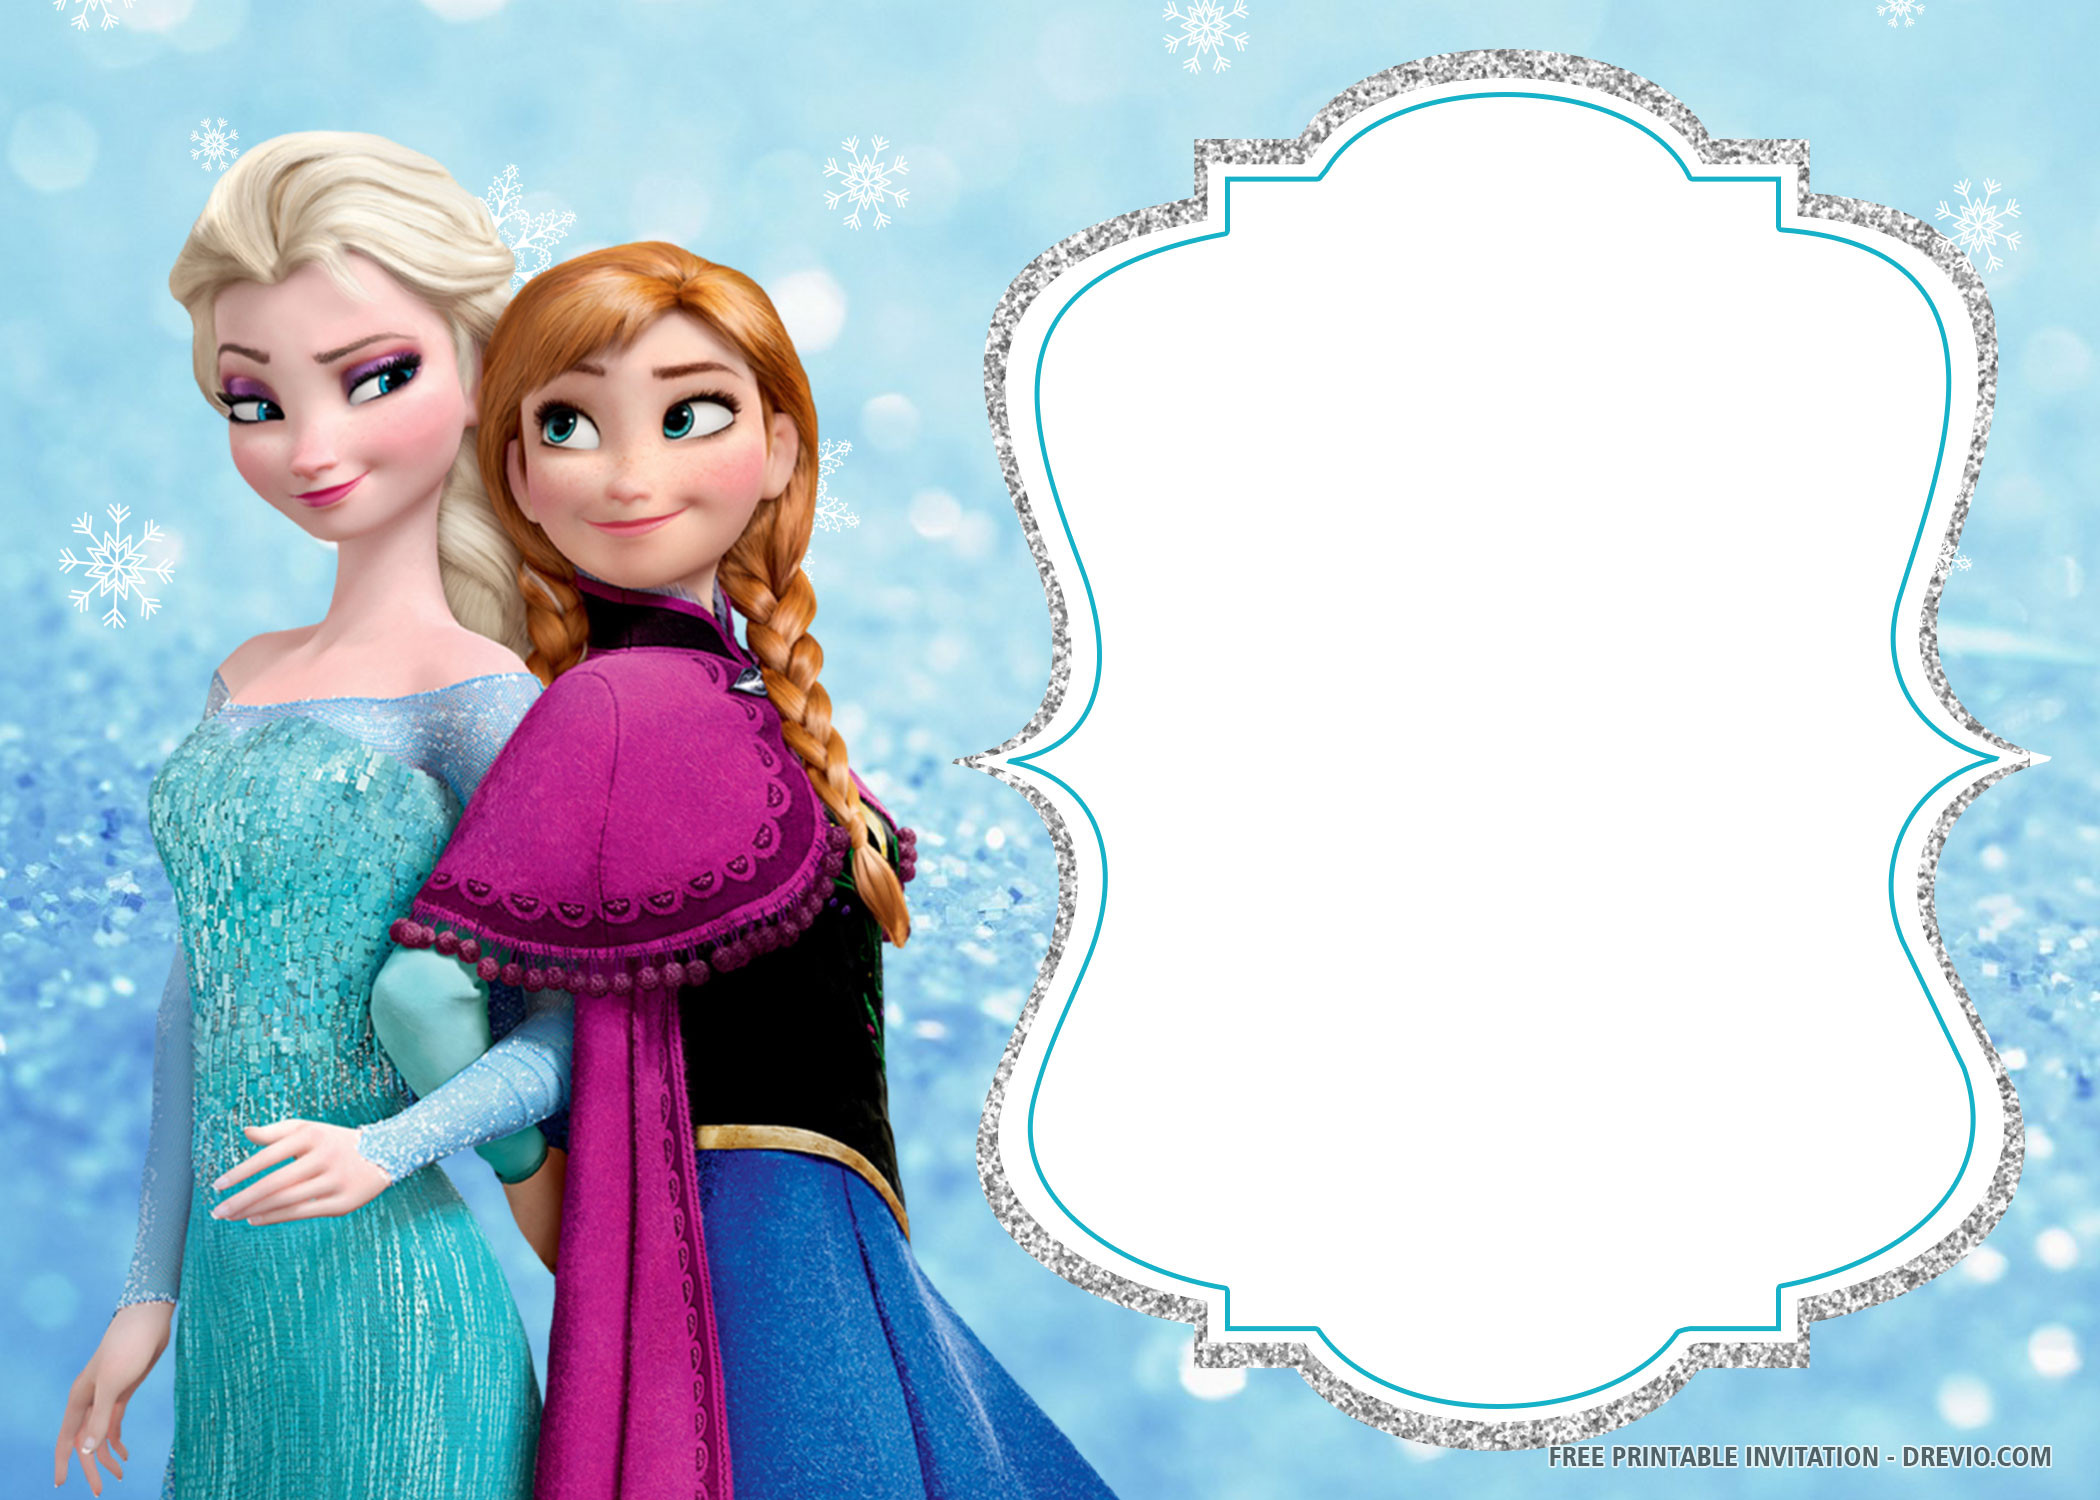 Free Frozen Invitations Printable Free Printable Frozen Birthday Invitation Templates